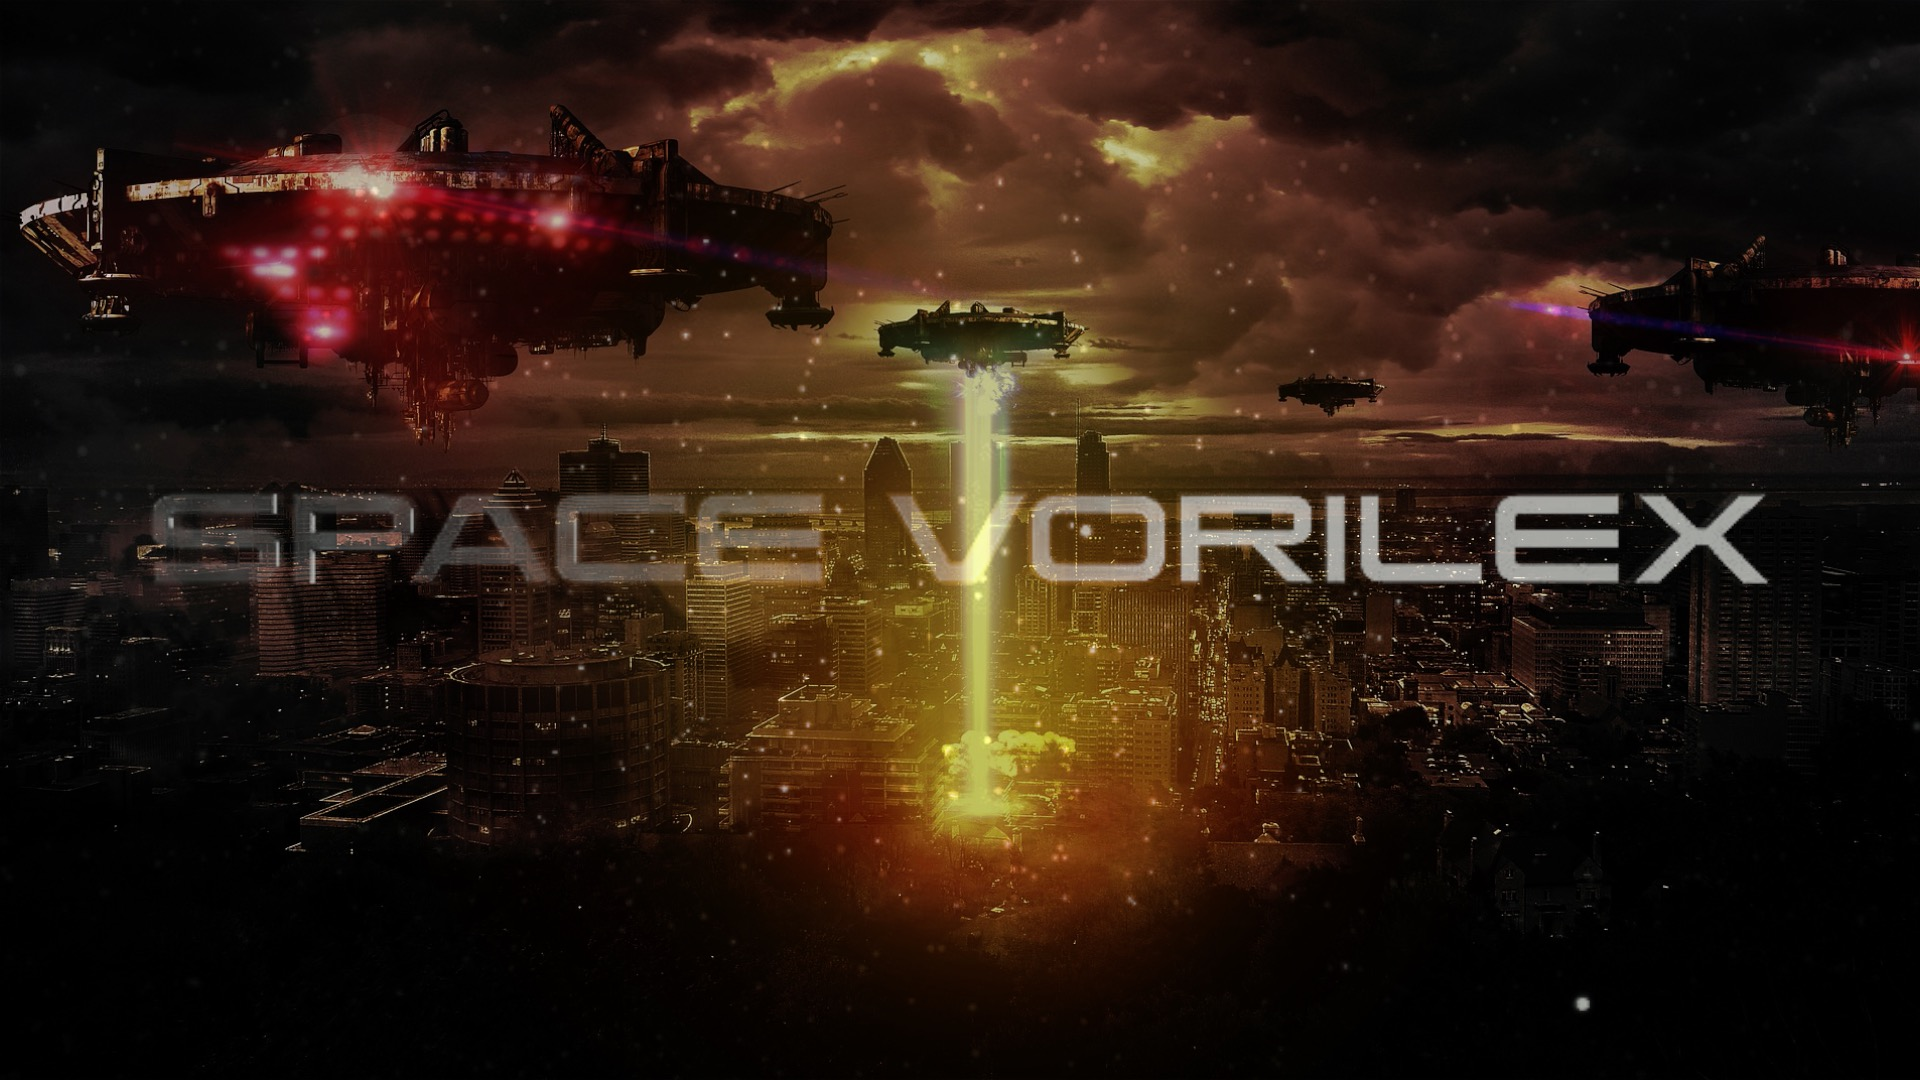 2b Acting's first selective interactive video game, Space Vorilex